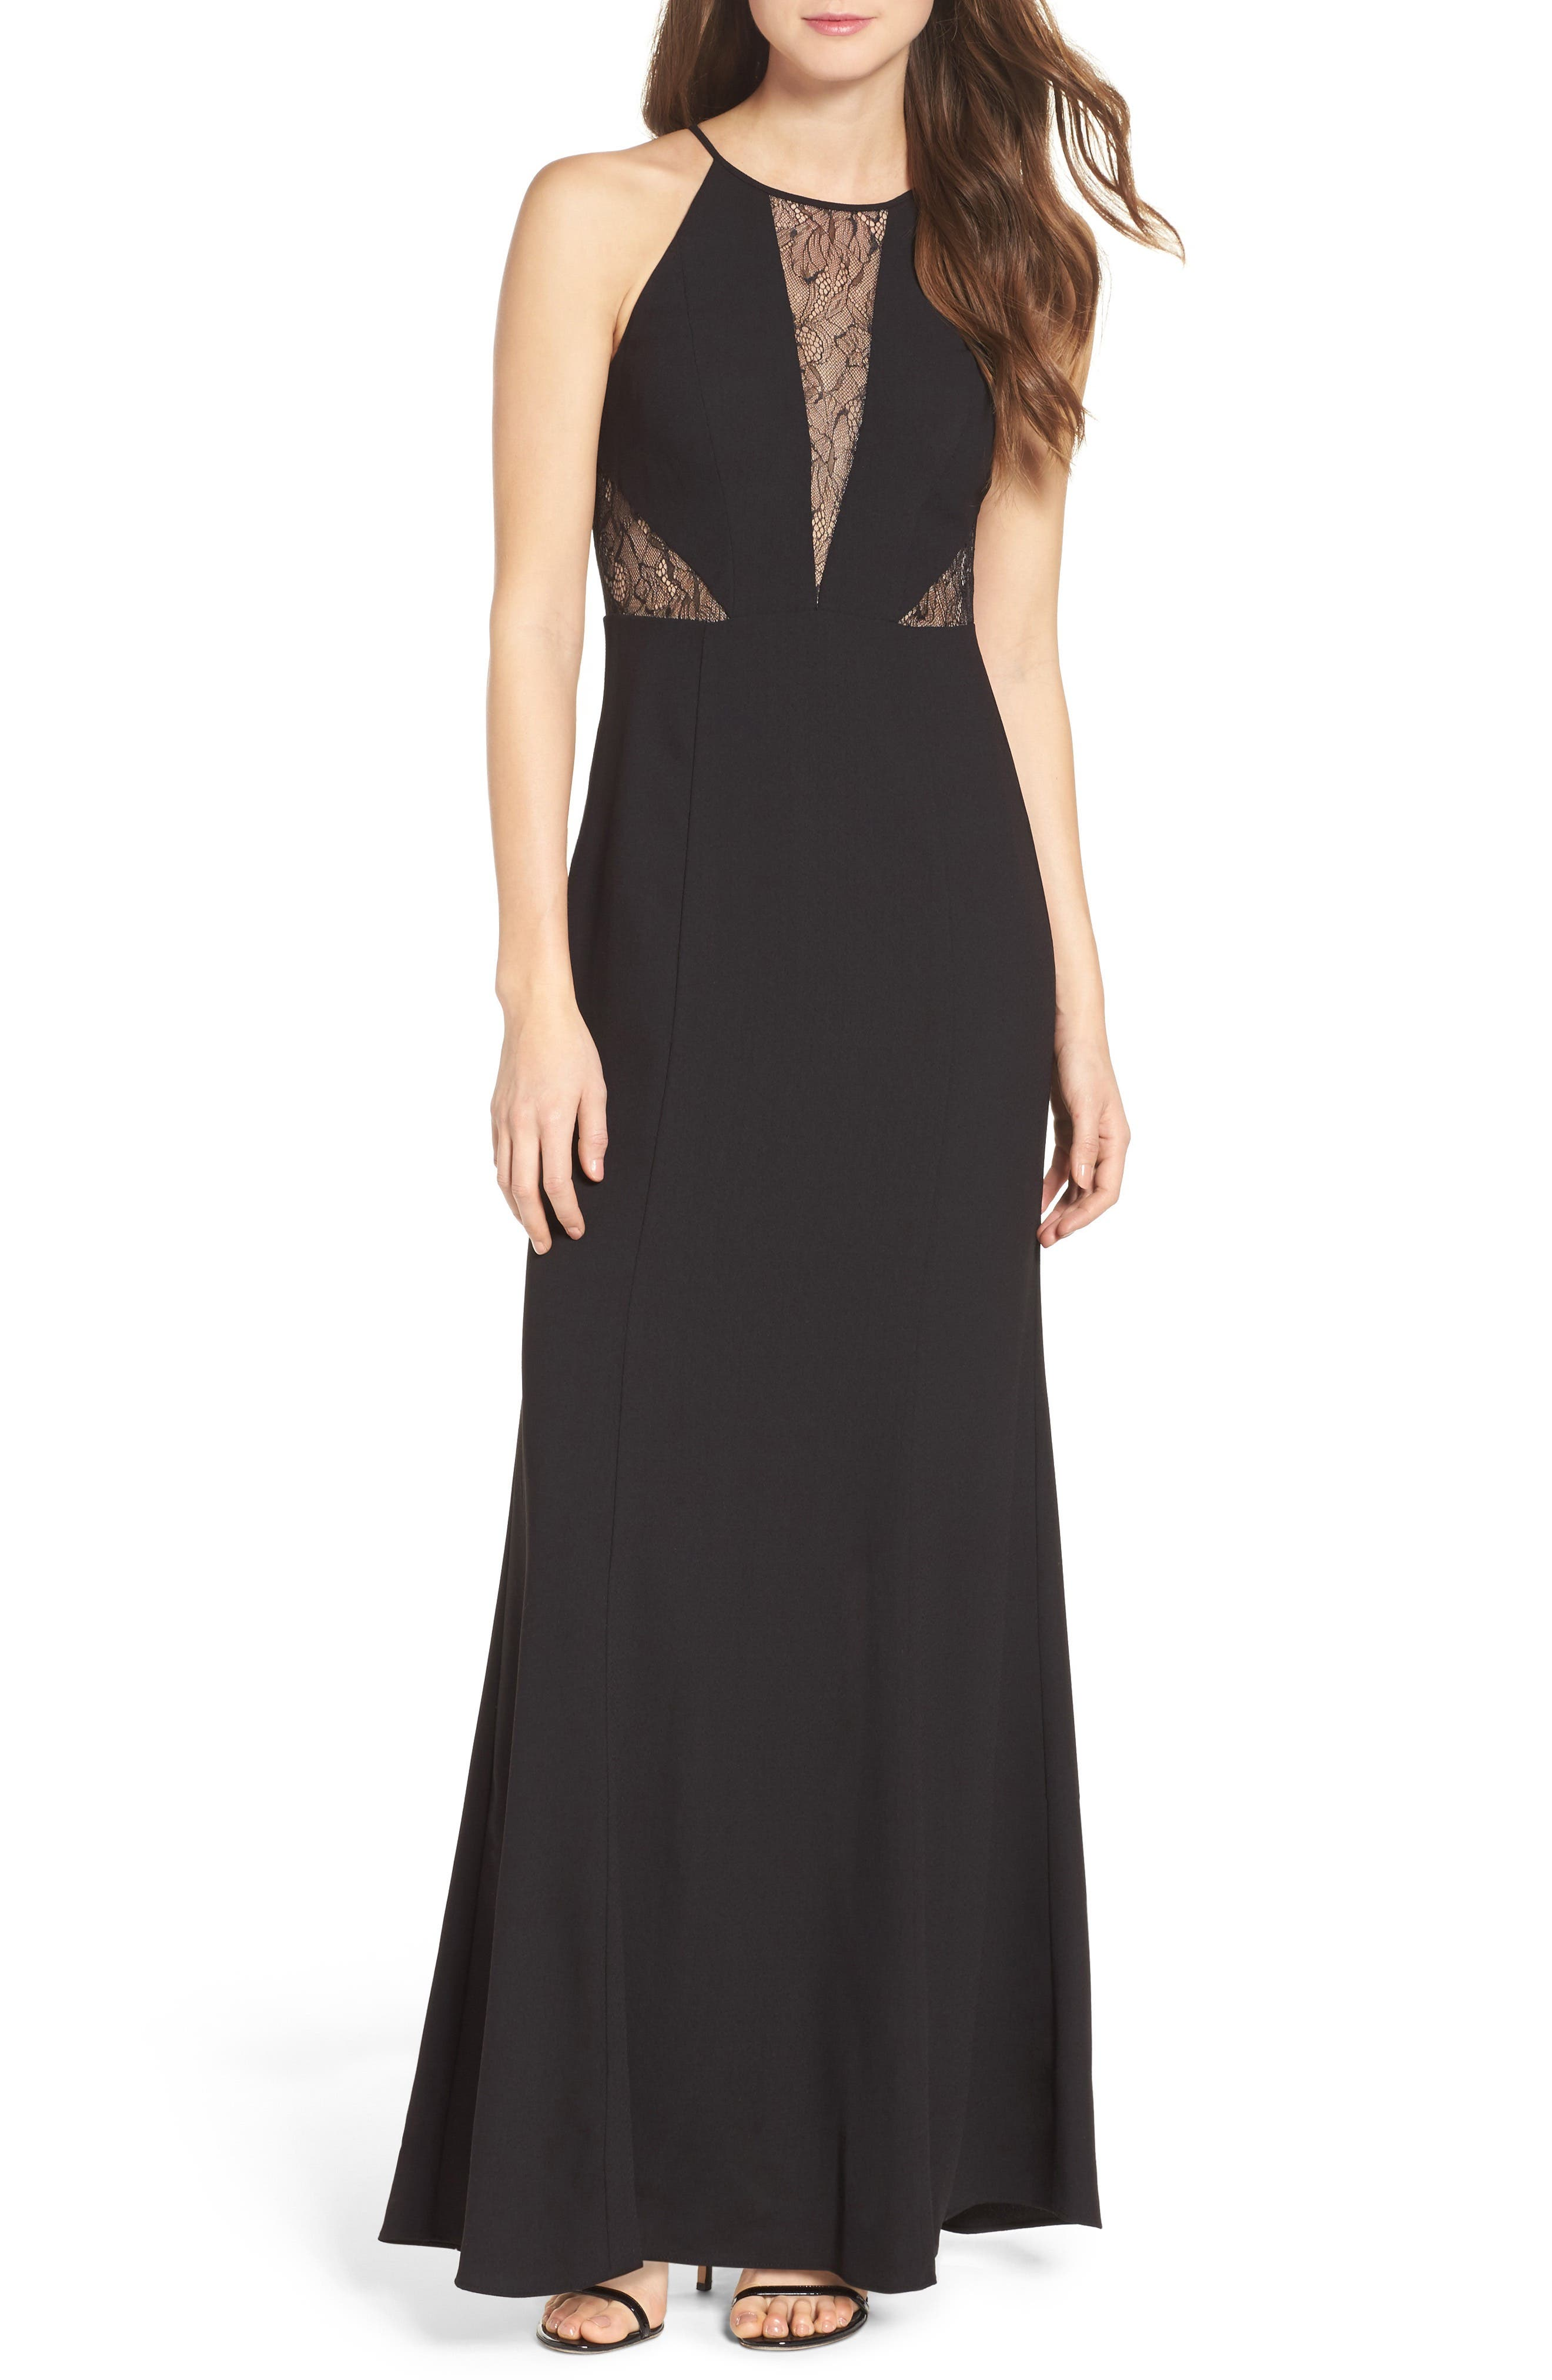 Main Image - Aidan by Aidan Mattox Crepe & Lace Halter Style Gown